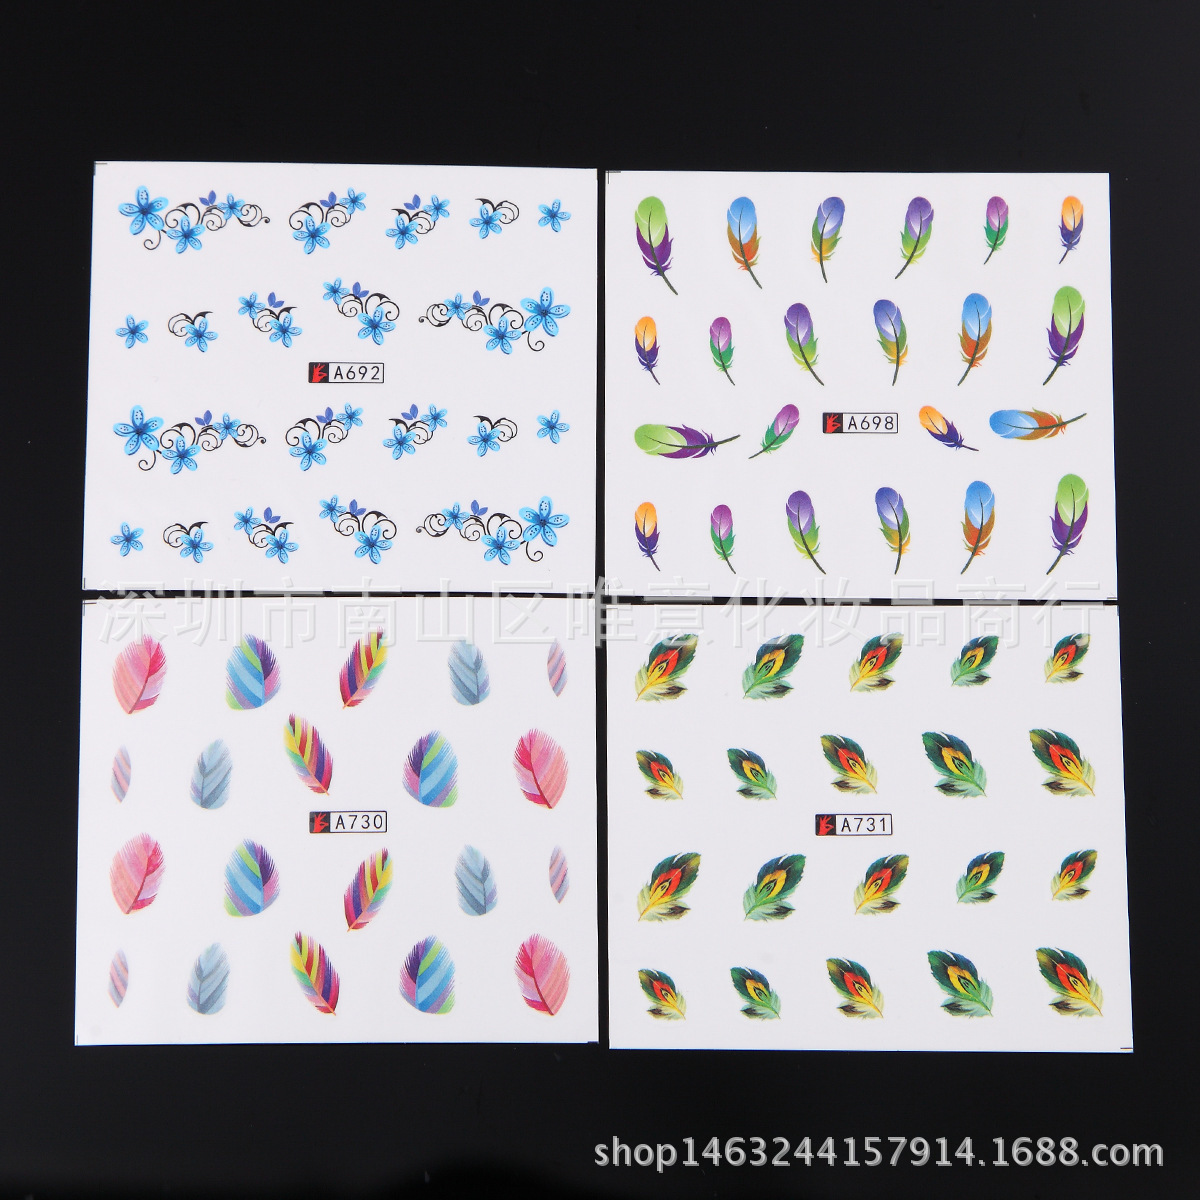 Hot Sales Butterfly Feather Watermark Nail Sticker Manicure Flower Stickers 50 One-Case Different-